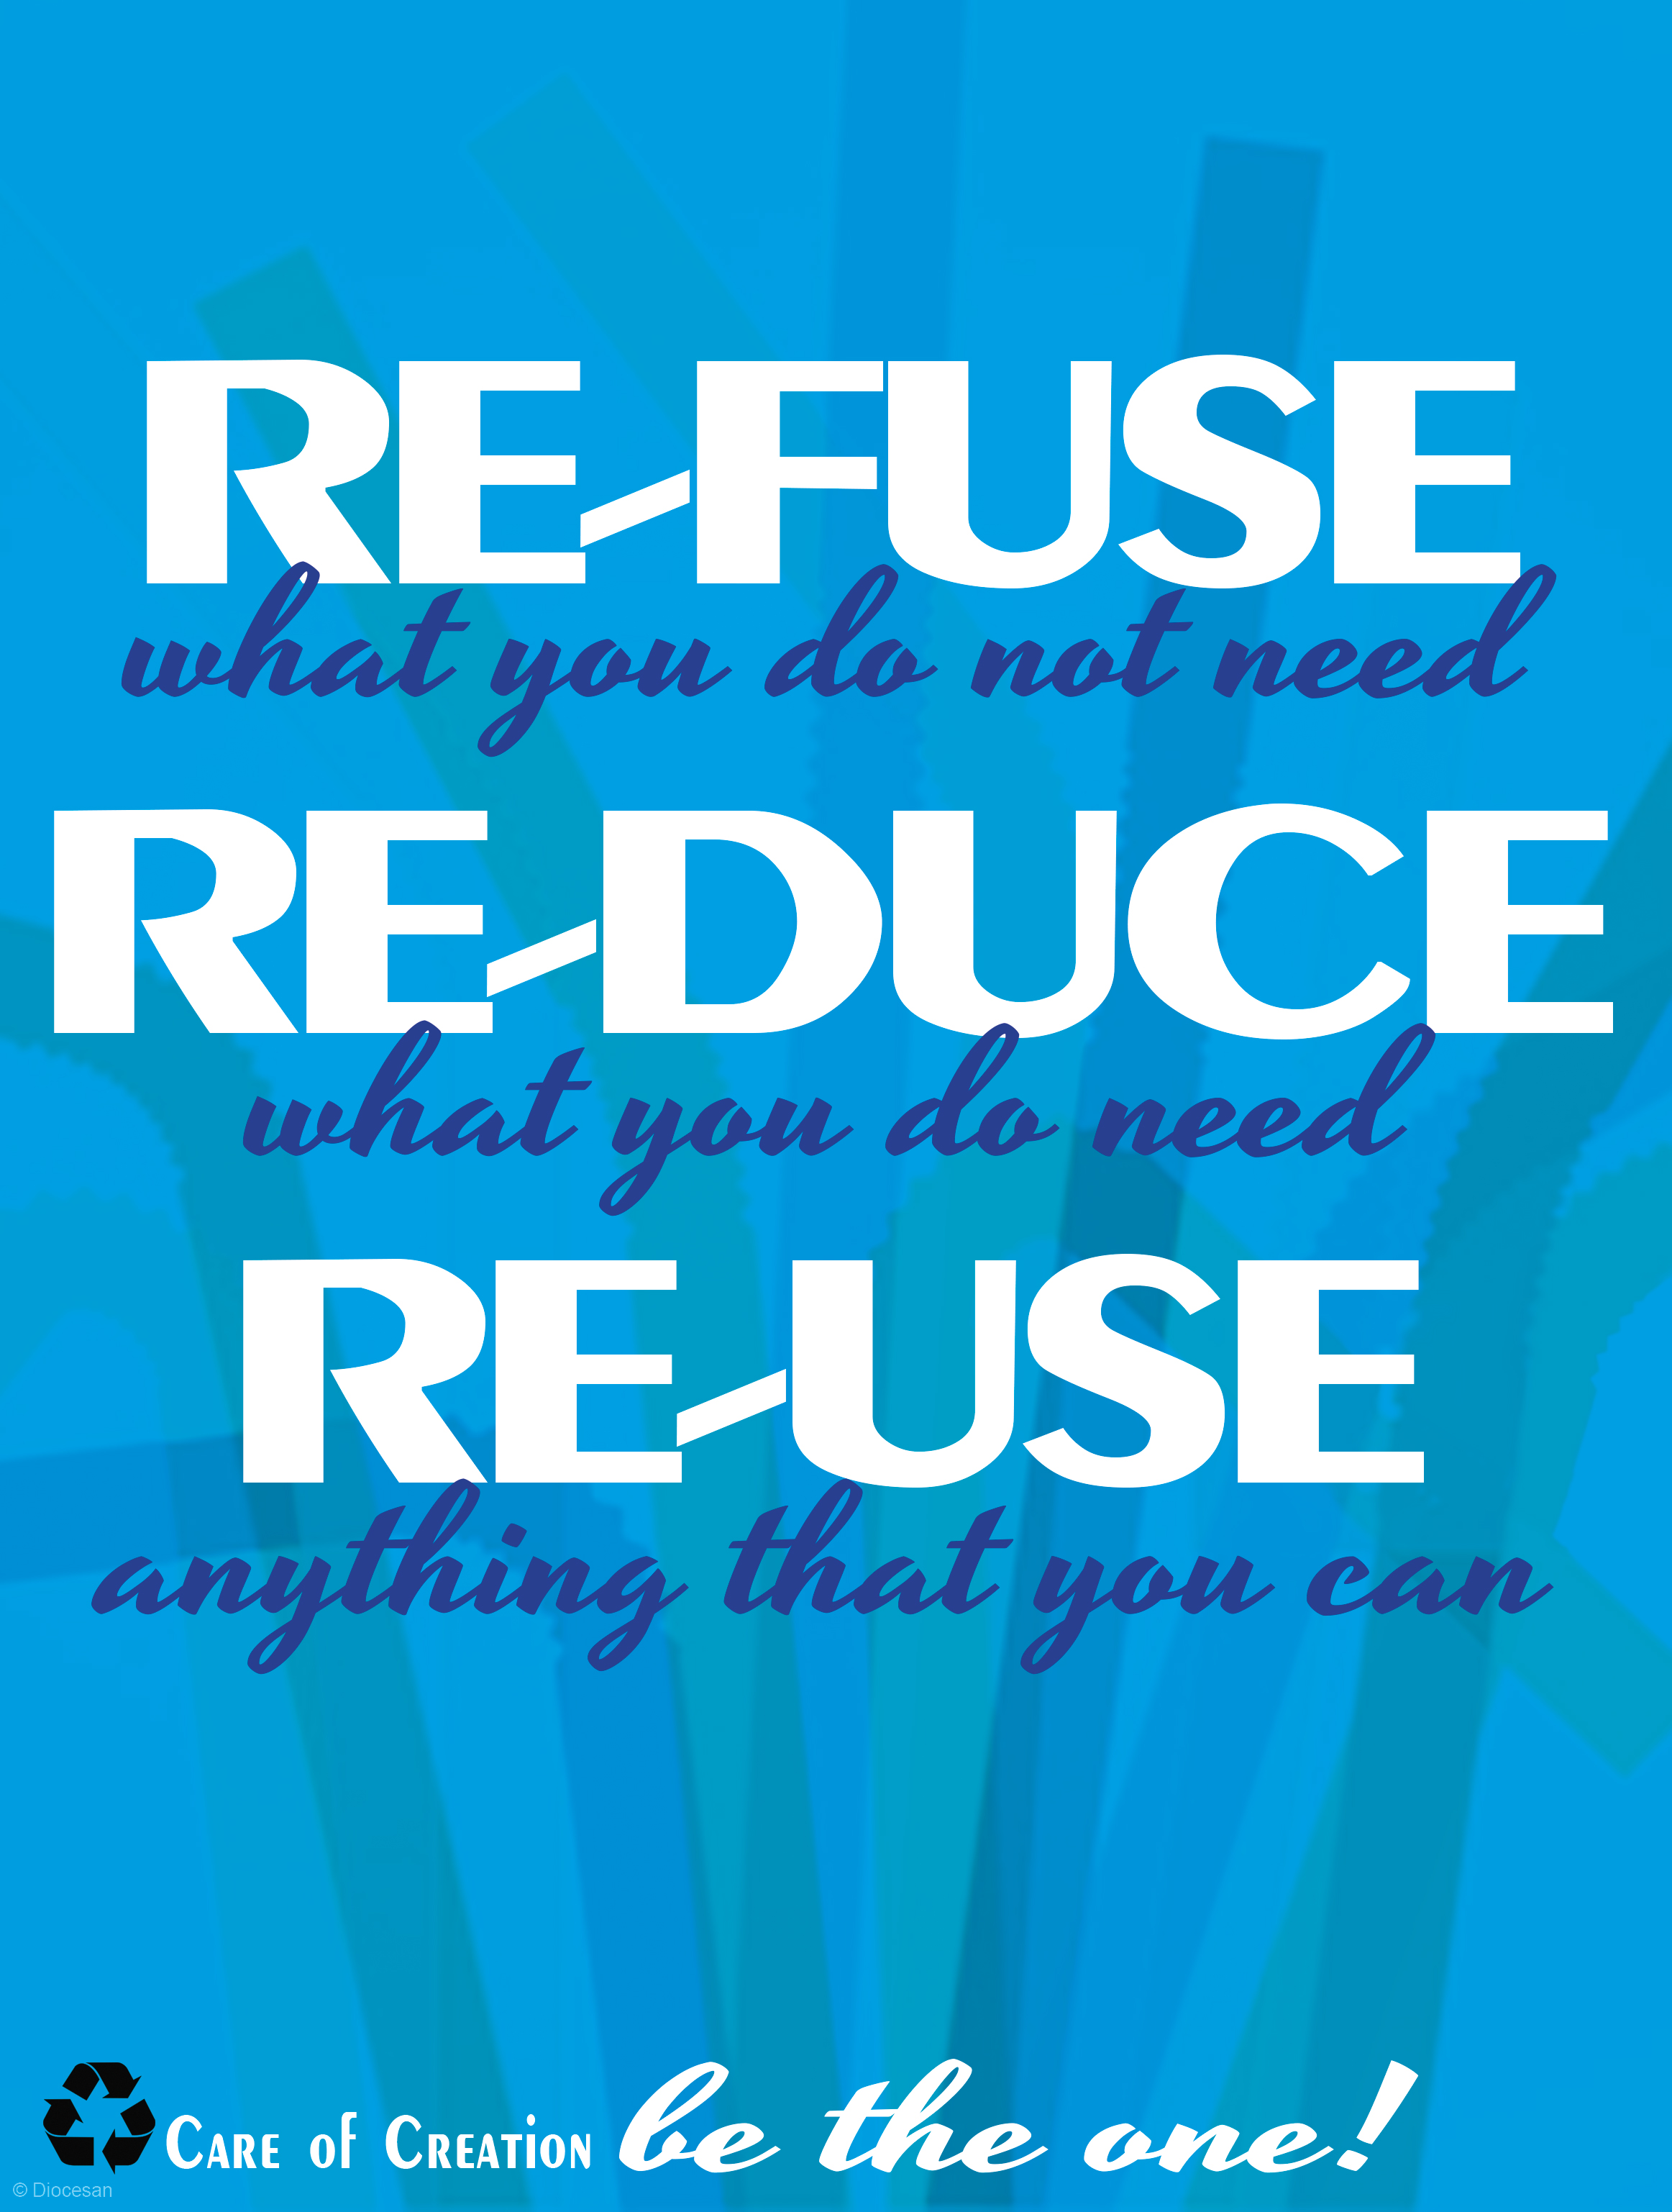 Re-Duce and Re-Use